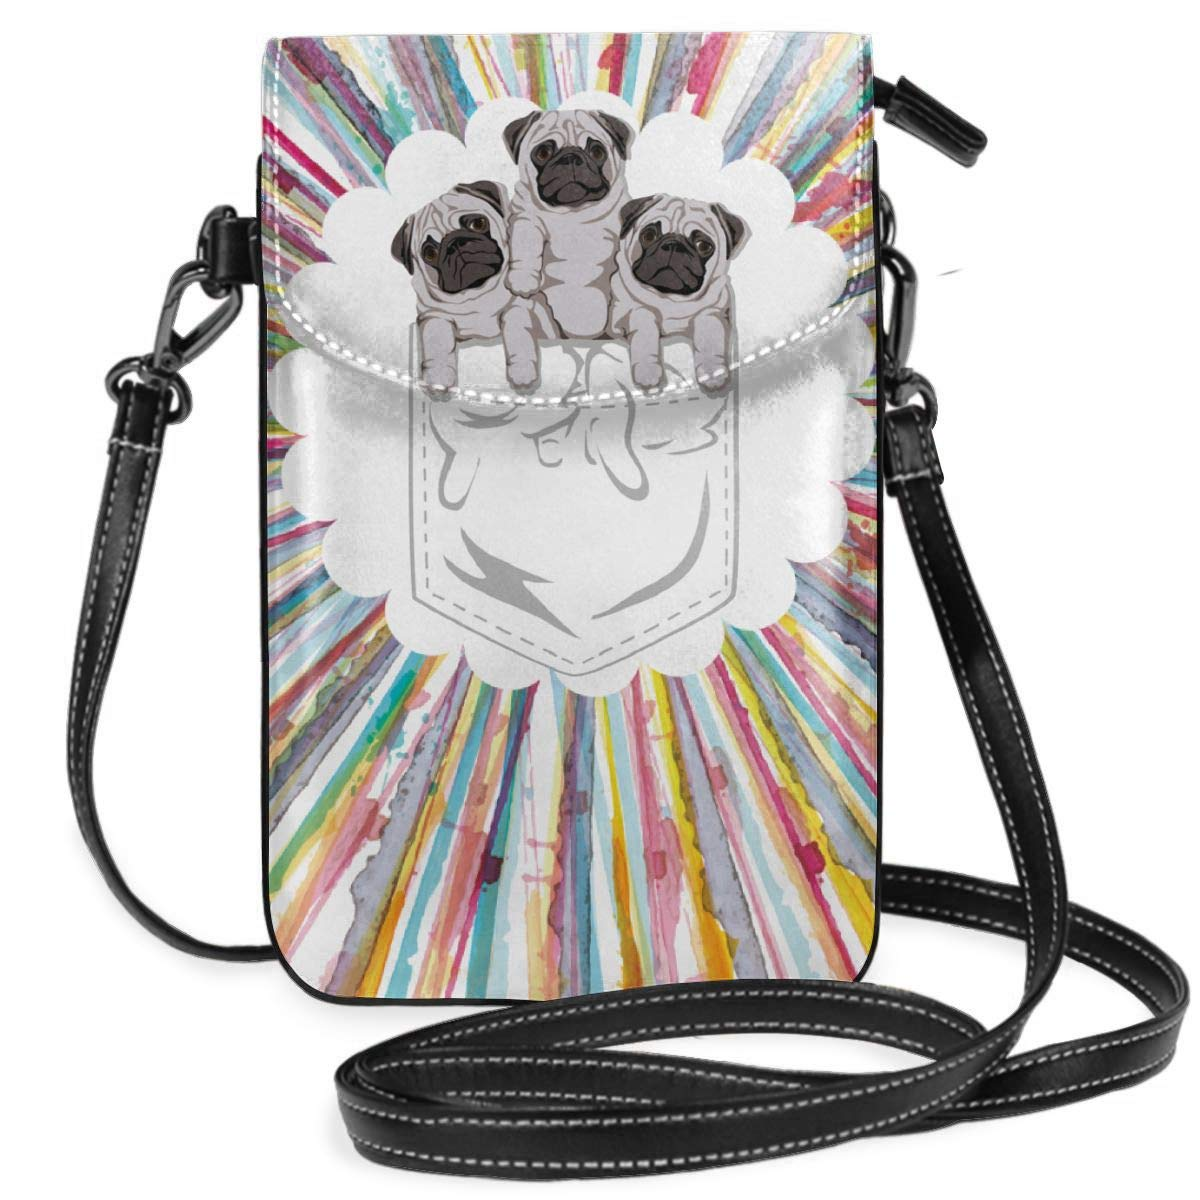 Small Cell Phone Purse Animal Pocket Pug Dog Crossbody Bags with Shoulder Strap Coin Purse Wallet for Women,Girls